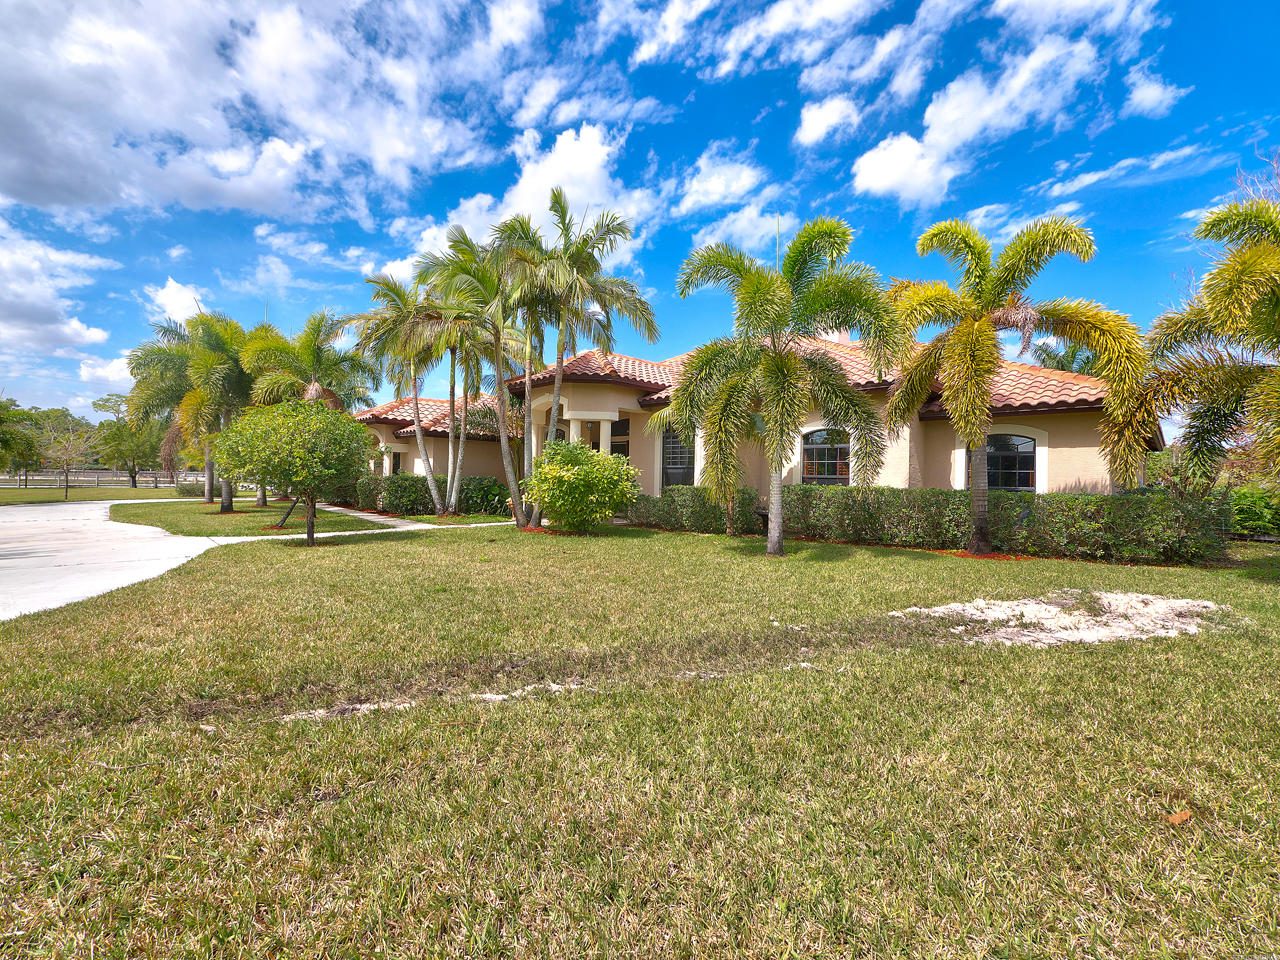 13481 COLLECTING CANAL ROAD, LOXAHATCHEE GROVES, FL 33470